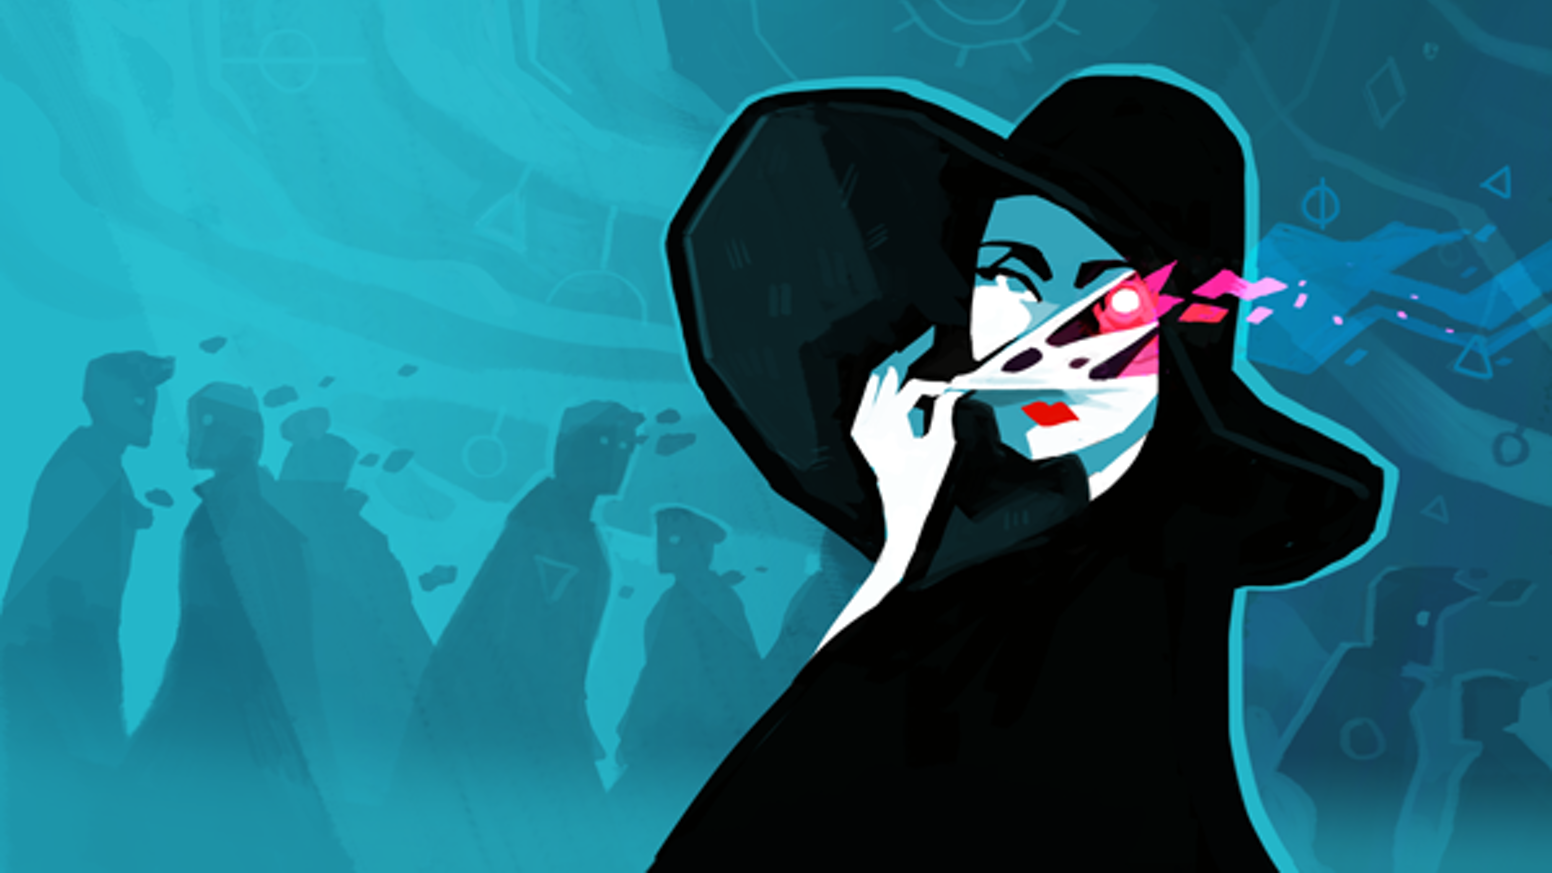 CULTIST SIMULATOR: a game of apocalypse and yearning from Alexis Kennedy, creator of FALLEN LONDON and creative director of SUNLESS SEA.